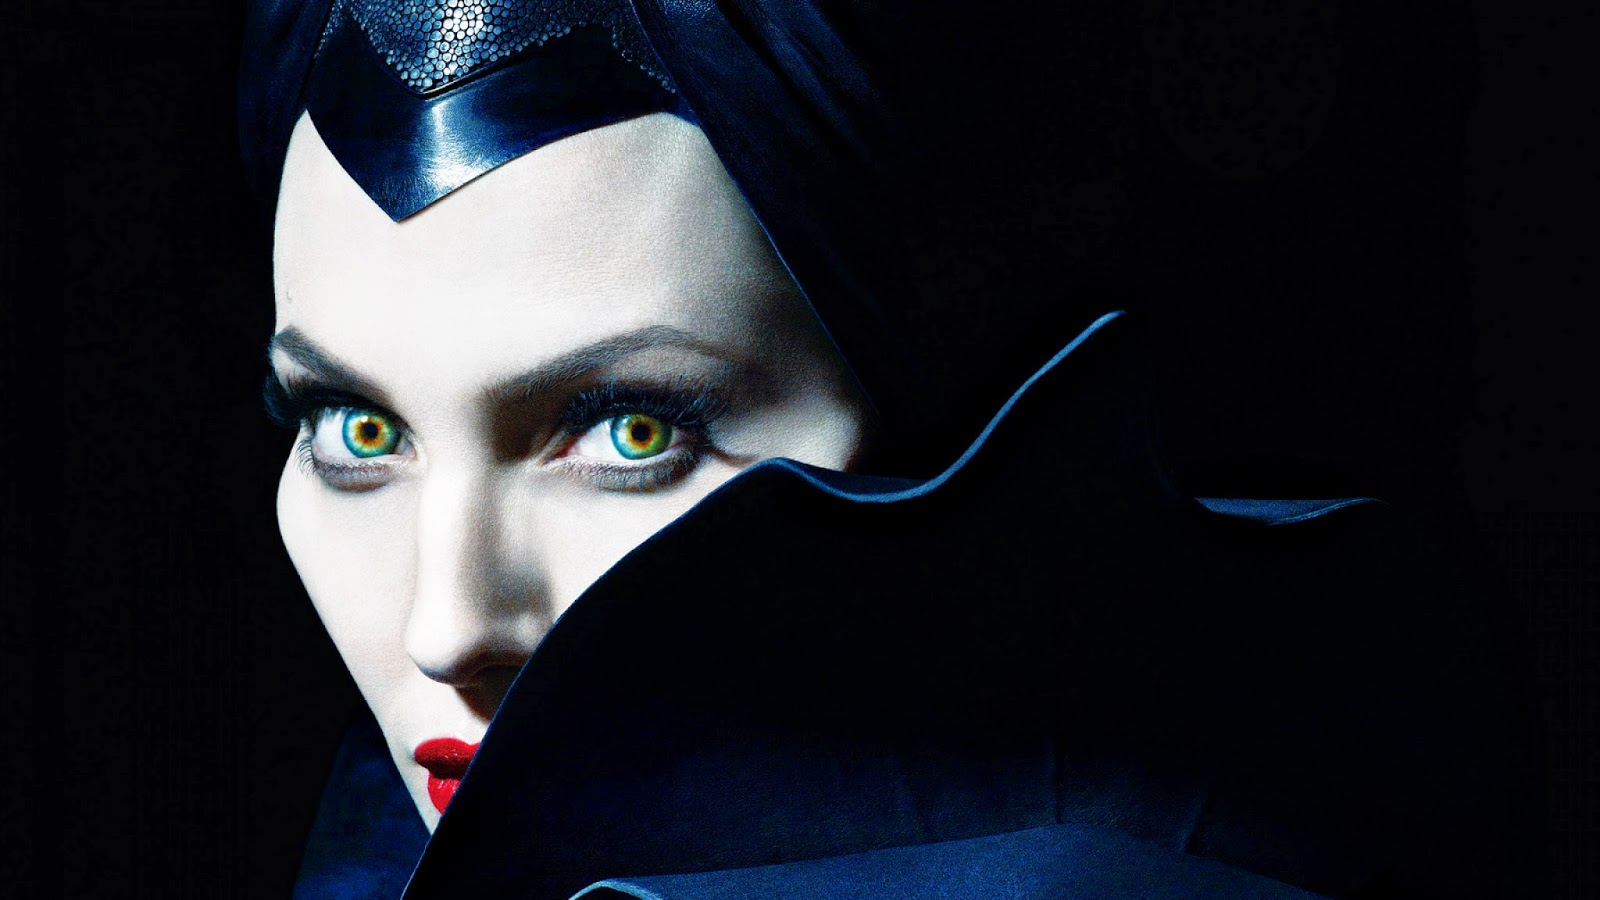 Angelina Jolie's Look in Maleficent